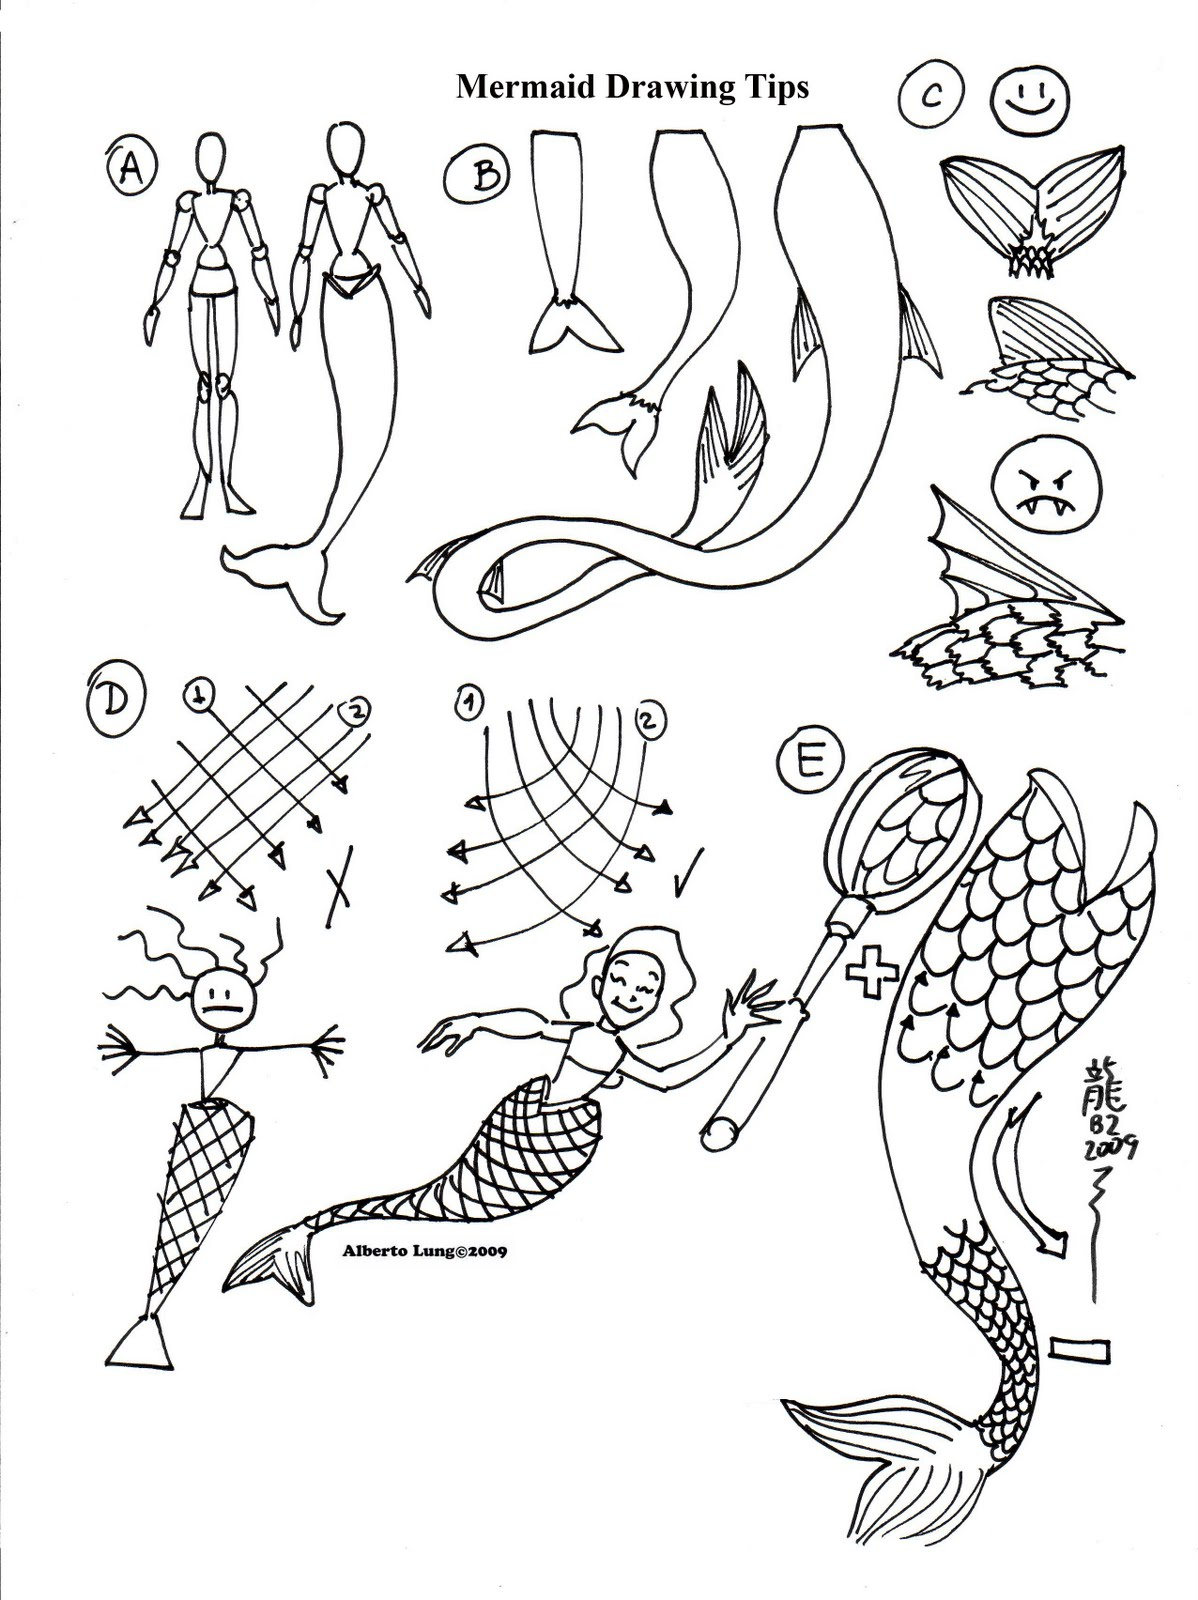 Kid Sketches: Mermaids Sketching Template